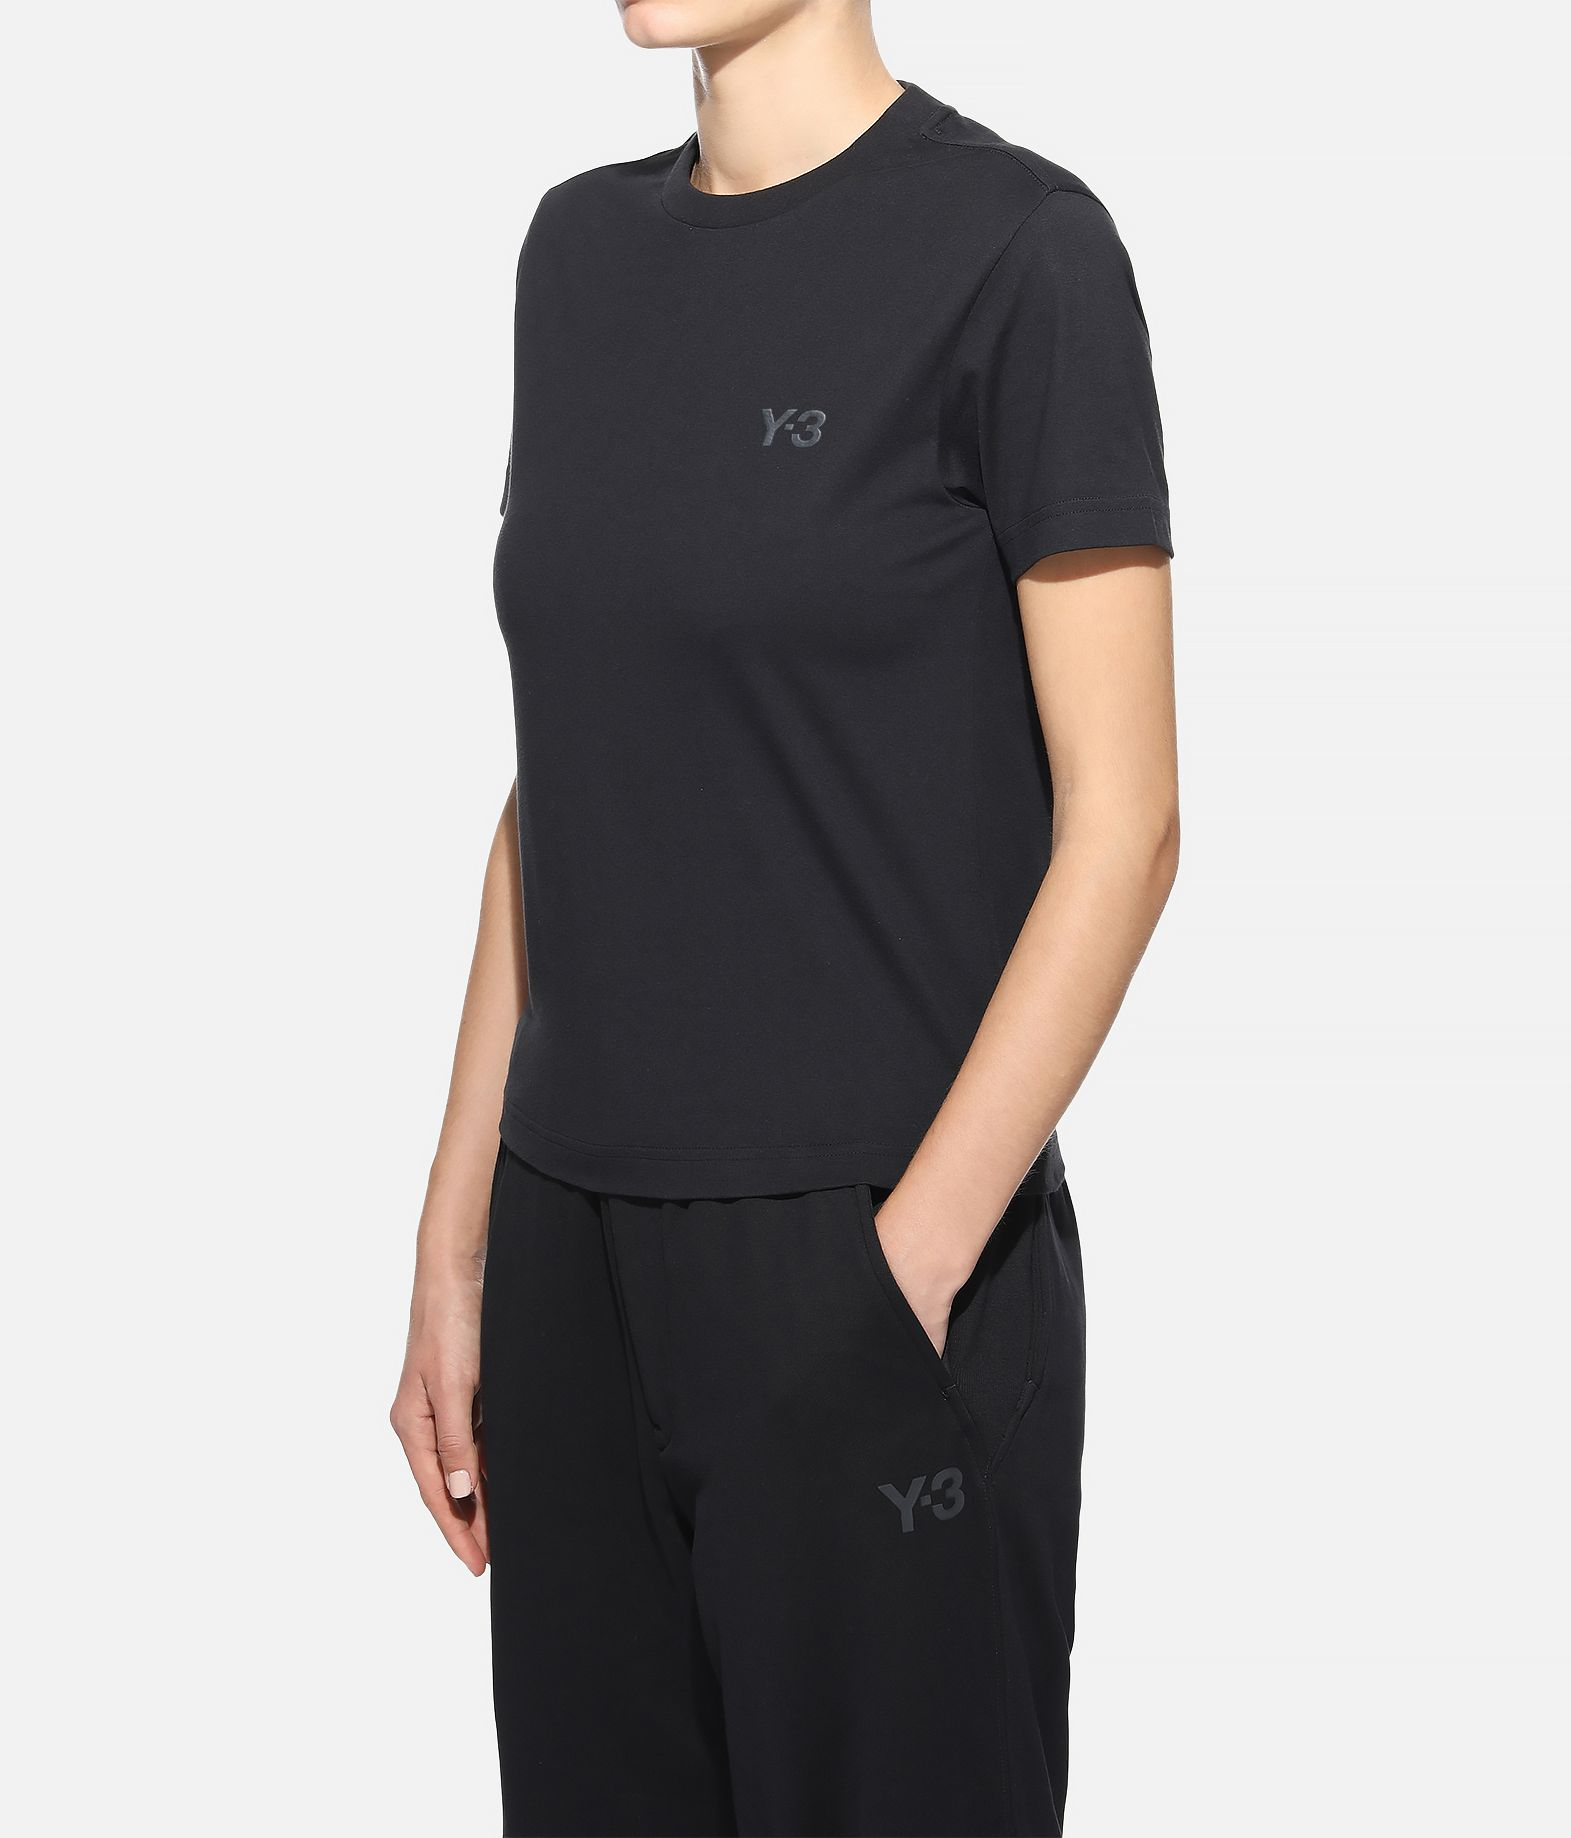 Y-3 Y-3 Short Sleeve Tee  Short sleeve t-shirt Woman e